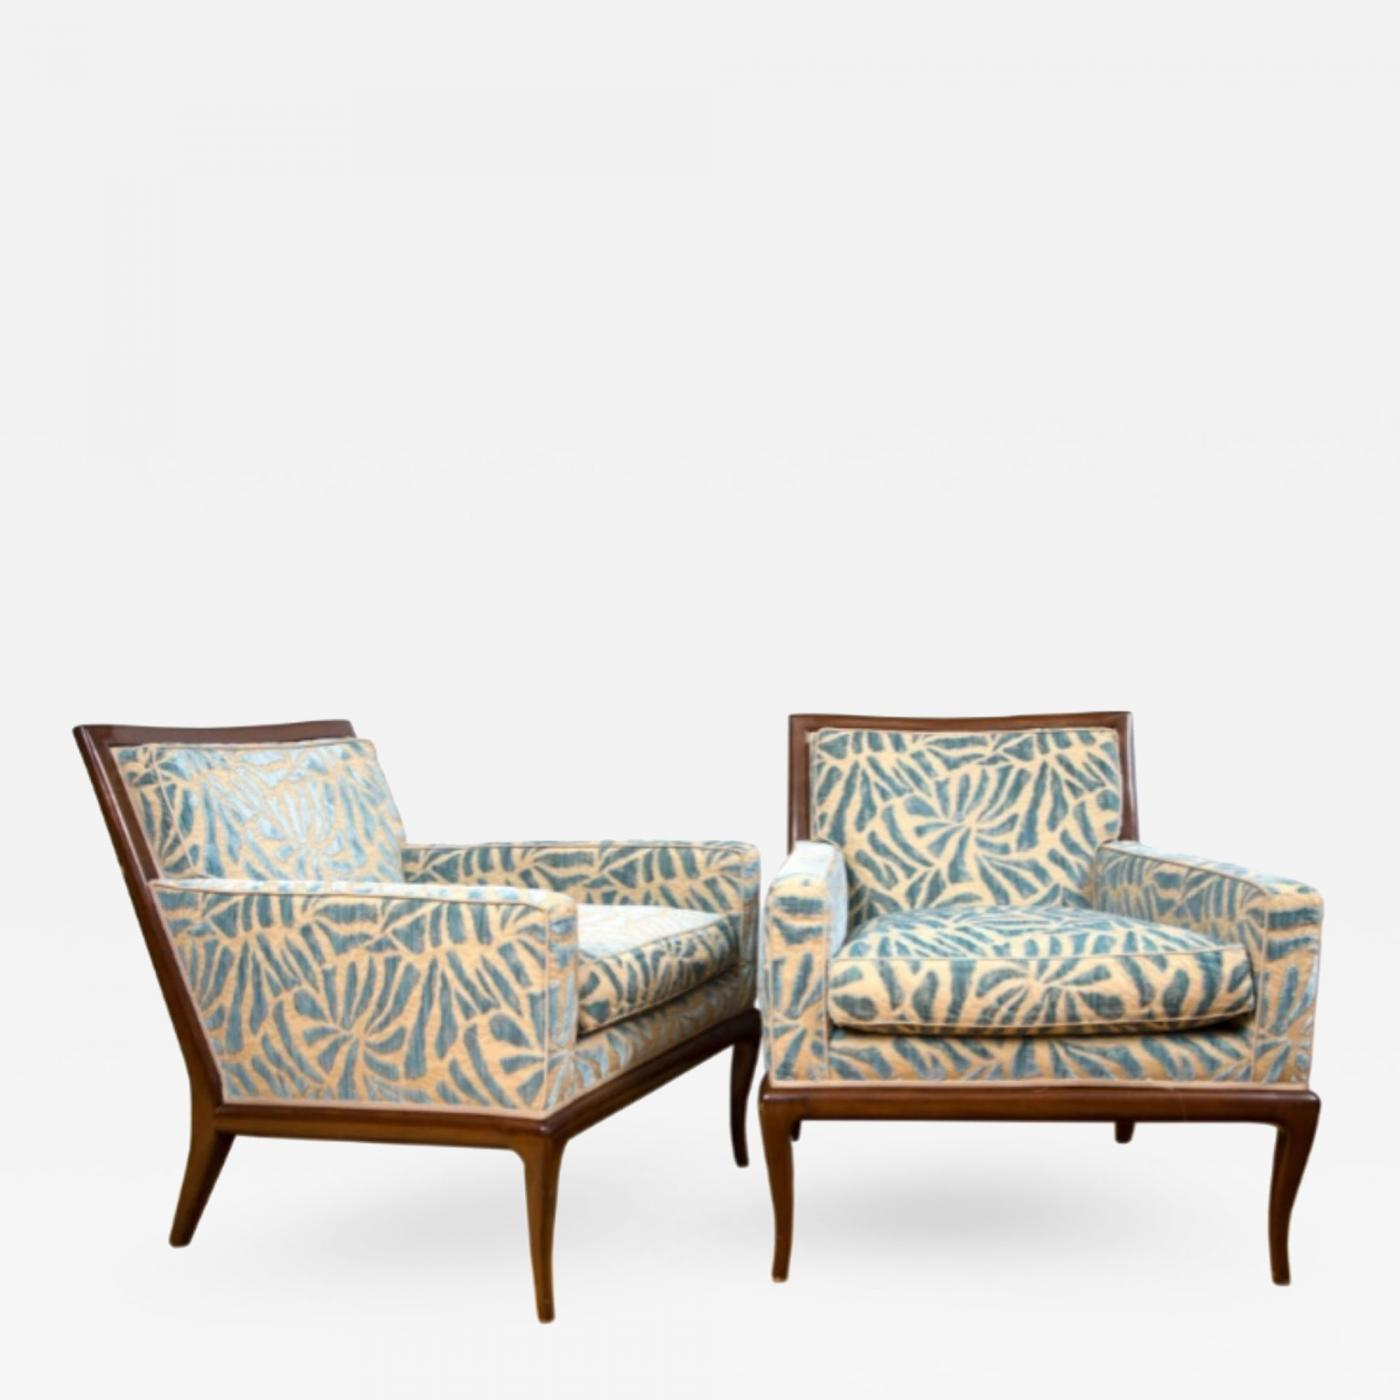 A pair of contemporary upholstered walnut lounge chairs